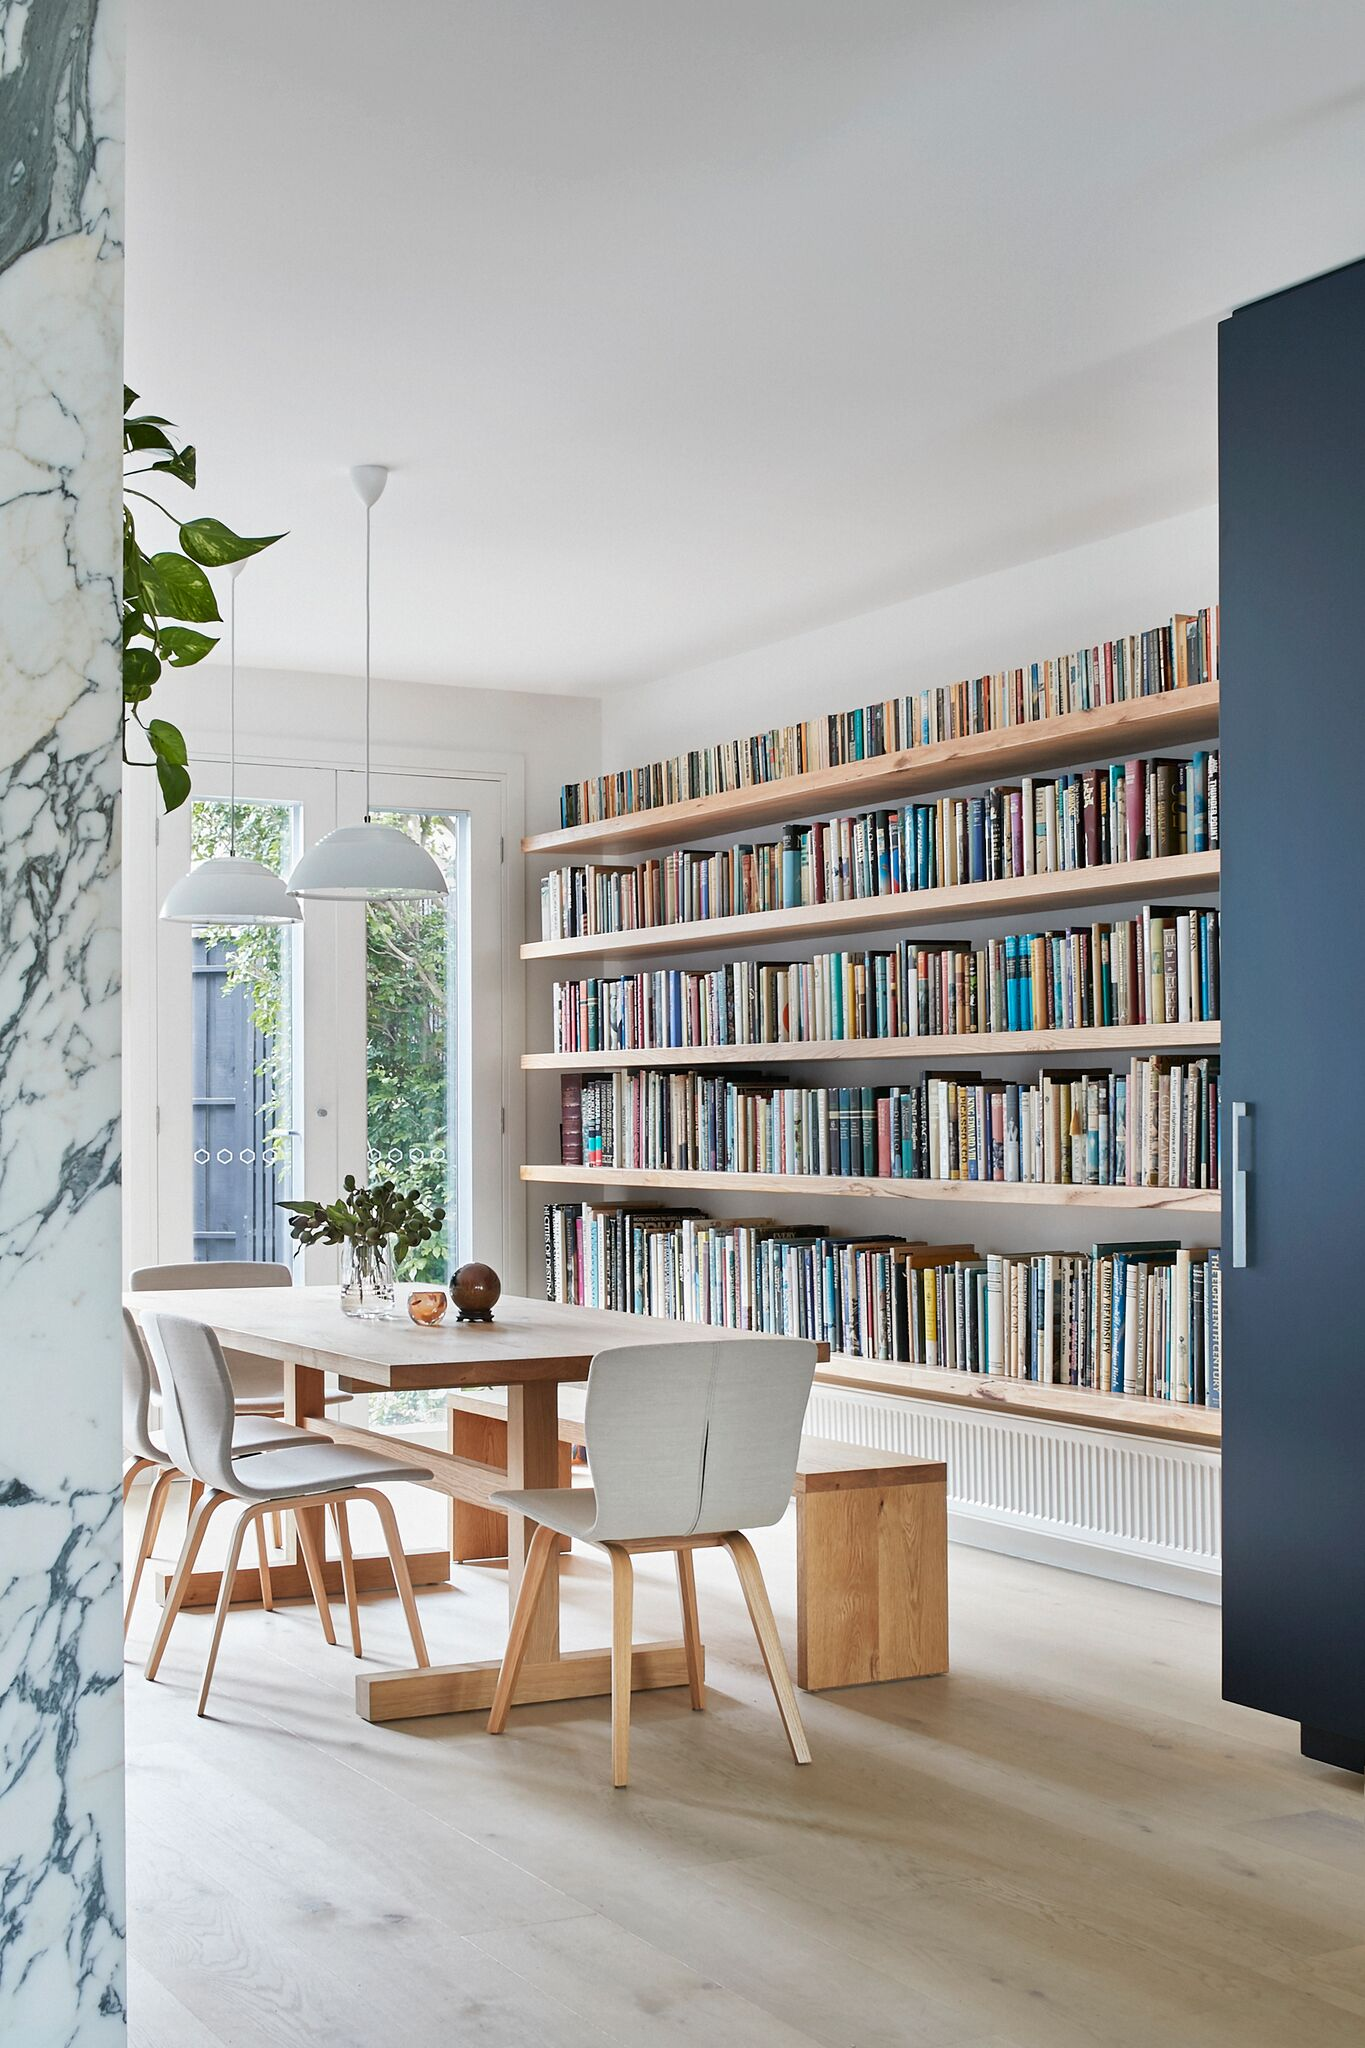 Gallery Of Blue Ivy House By Mcmahon And Nerlich Local Australian Architecture Design And Residential And Interiors Malvern, Melbourne Image 8